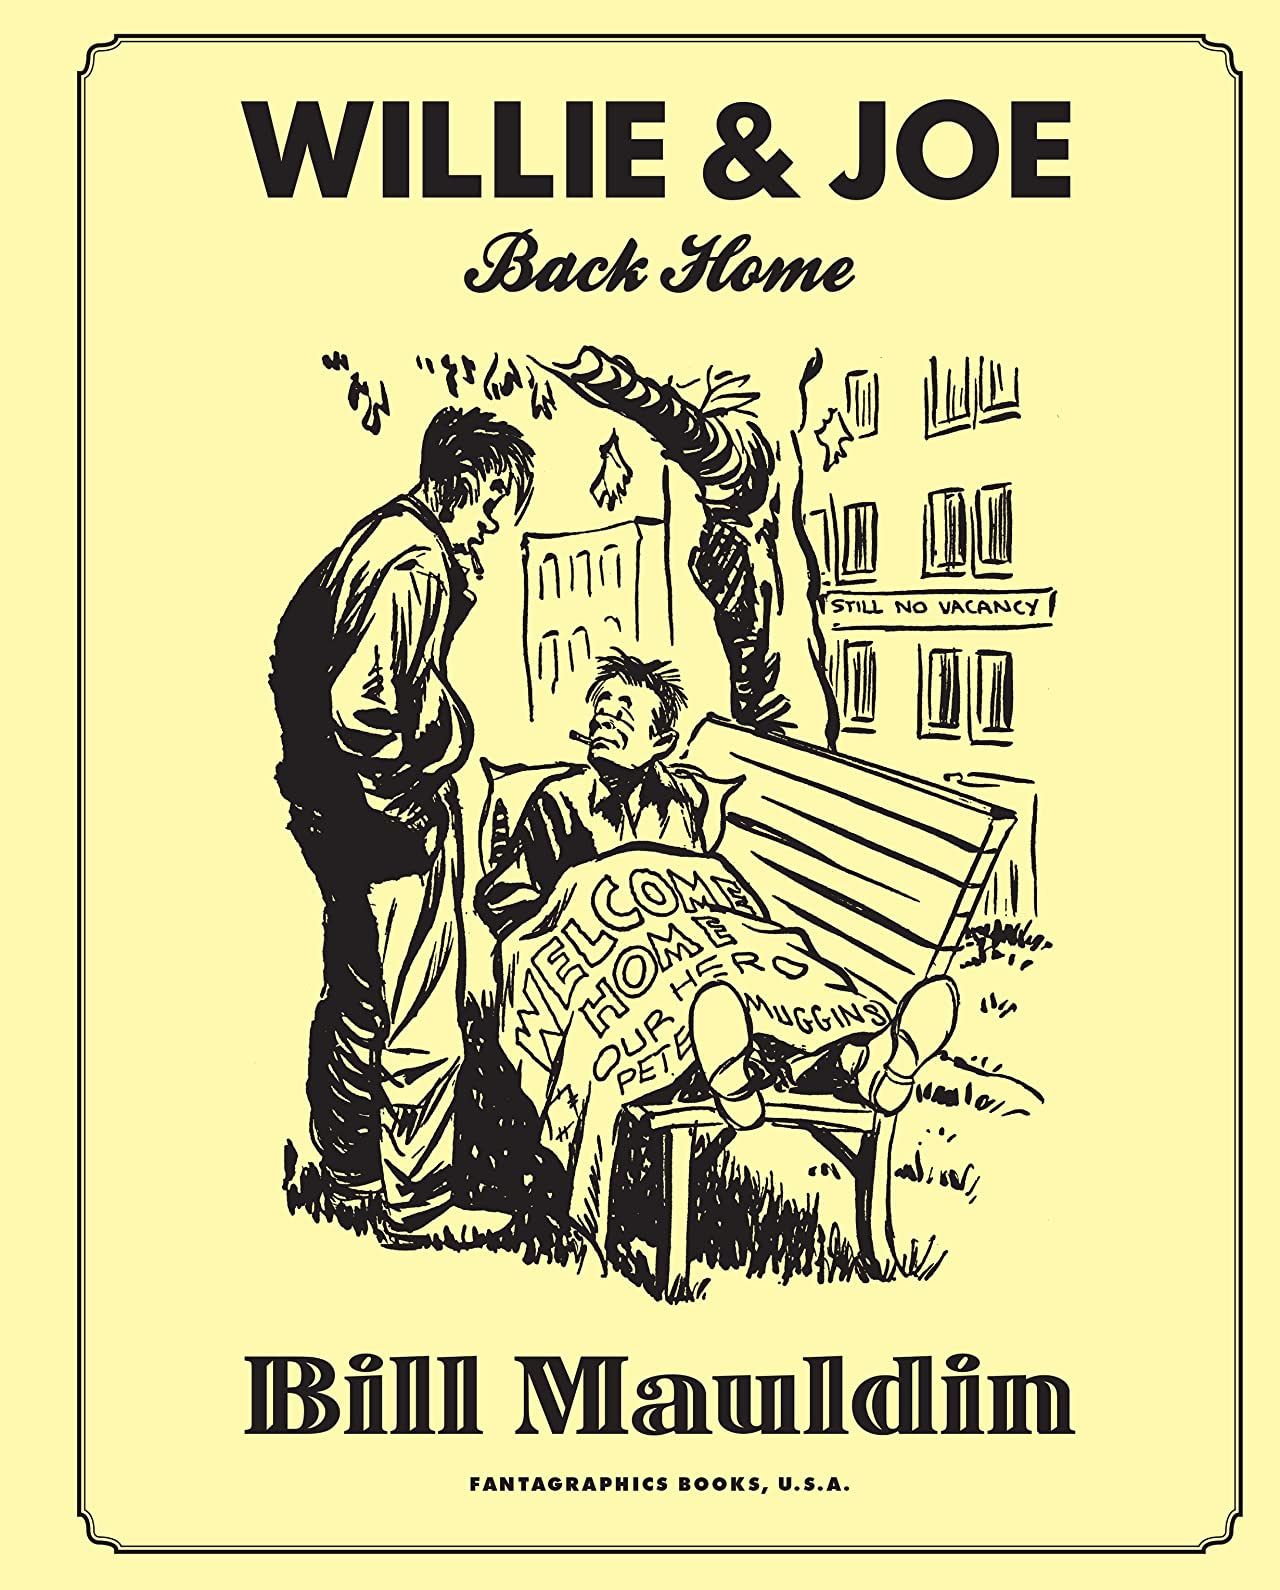 Willie & Joe: Back Home